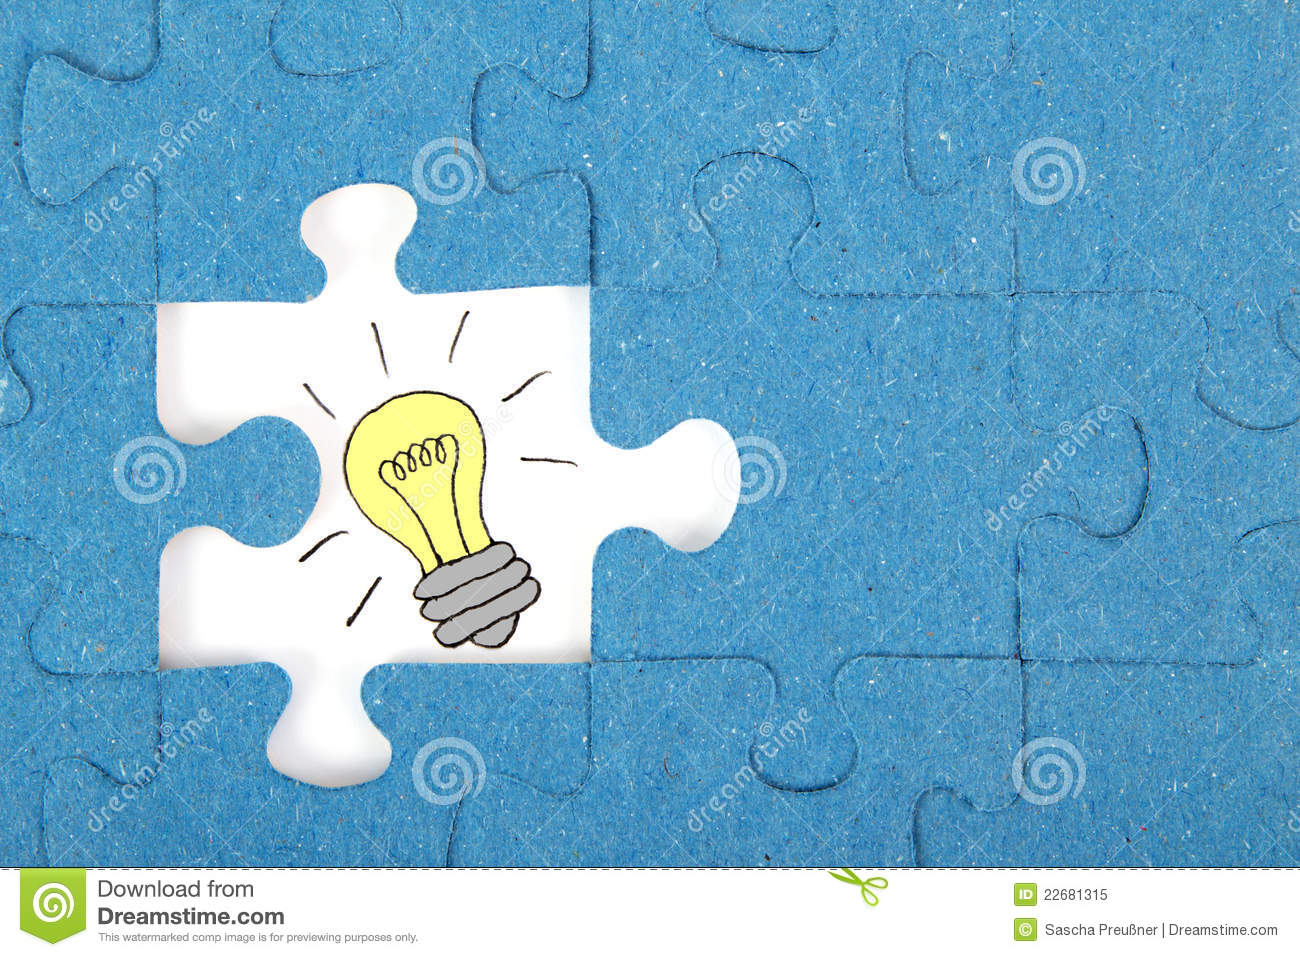 Missing Piece Of A Puzzle Royalty Free Stock Photo - Image ...